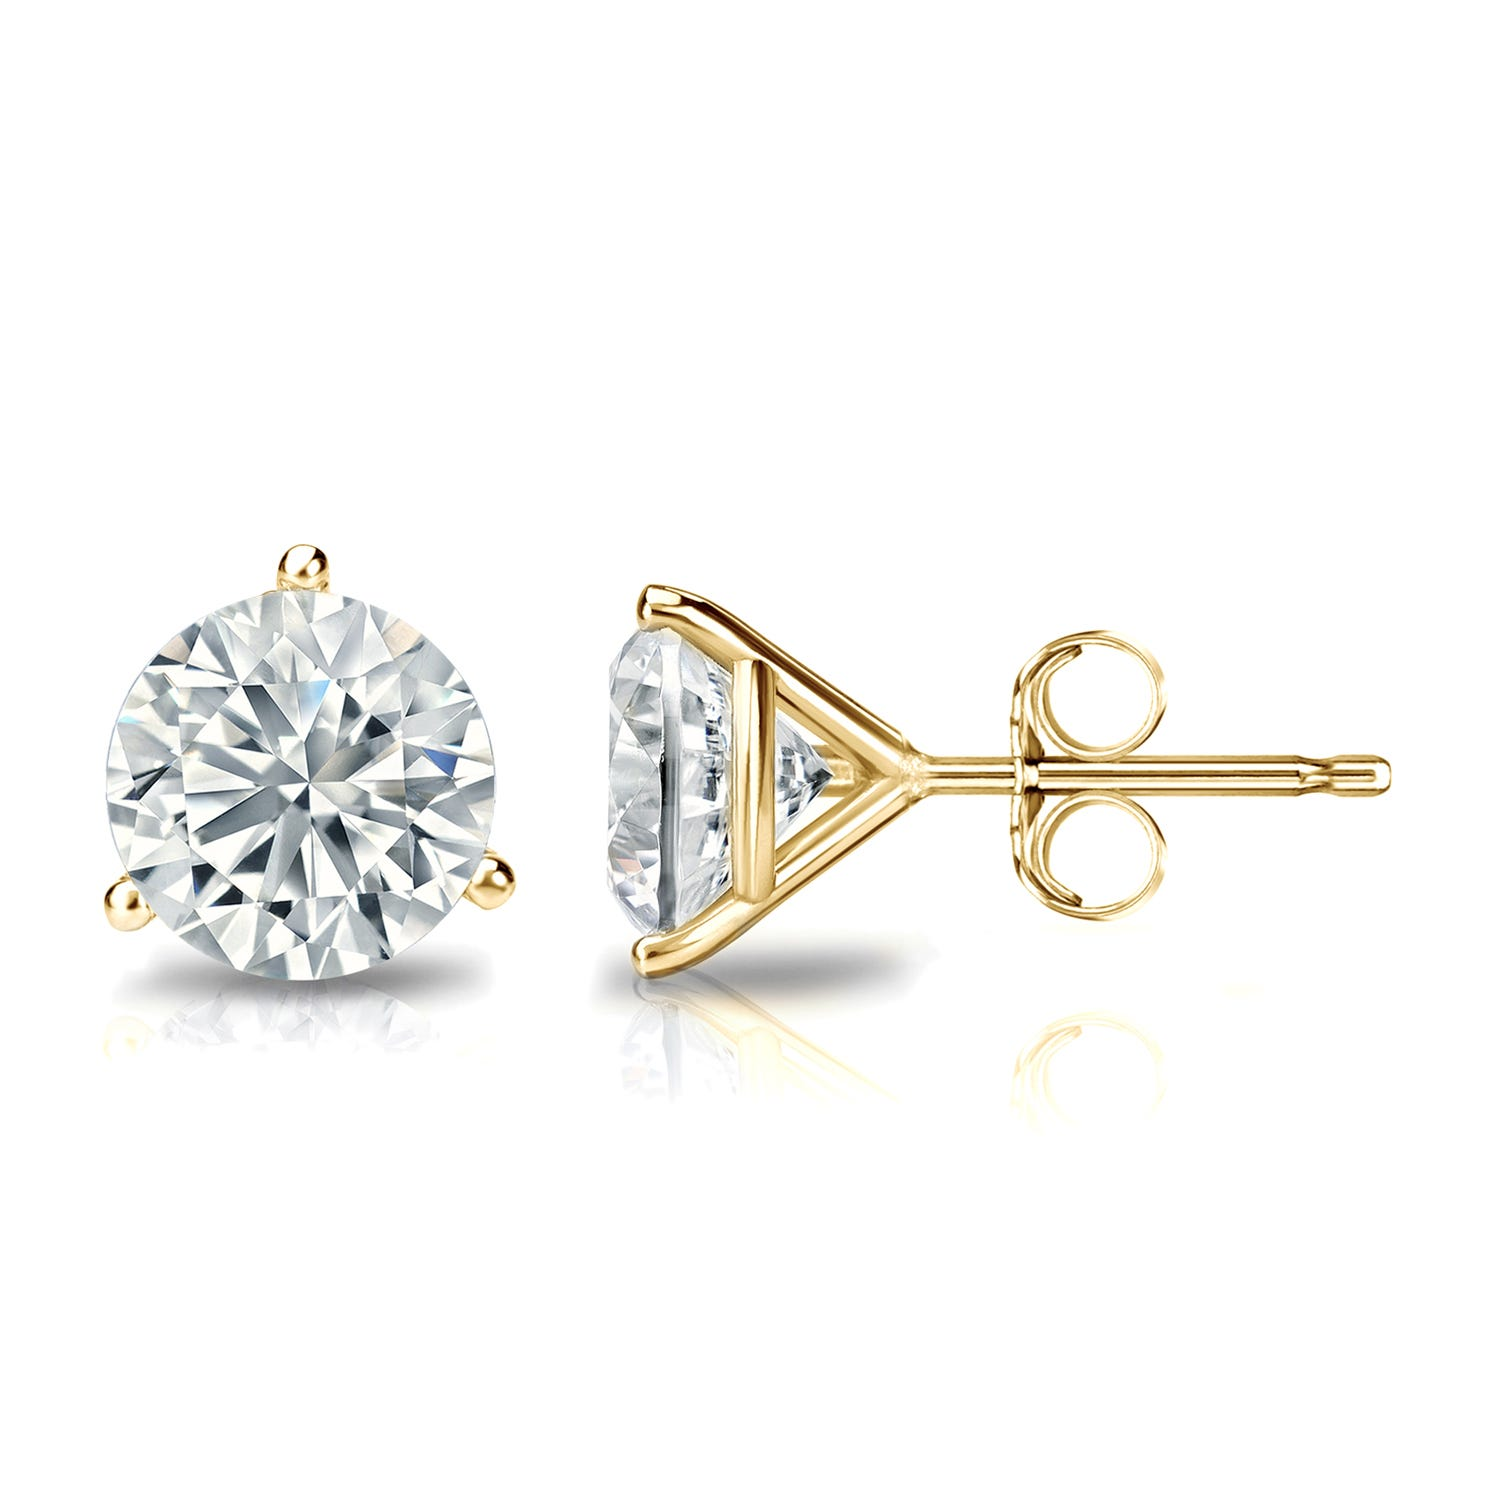 1-1/2 CTTW Round Diamond Solitaire Stud Earrings IJ I2 in 14K Yellow Gold IGI Certified 3-Prong Setting